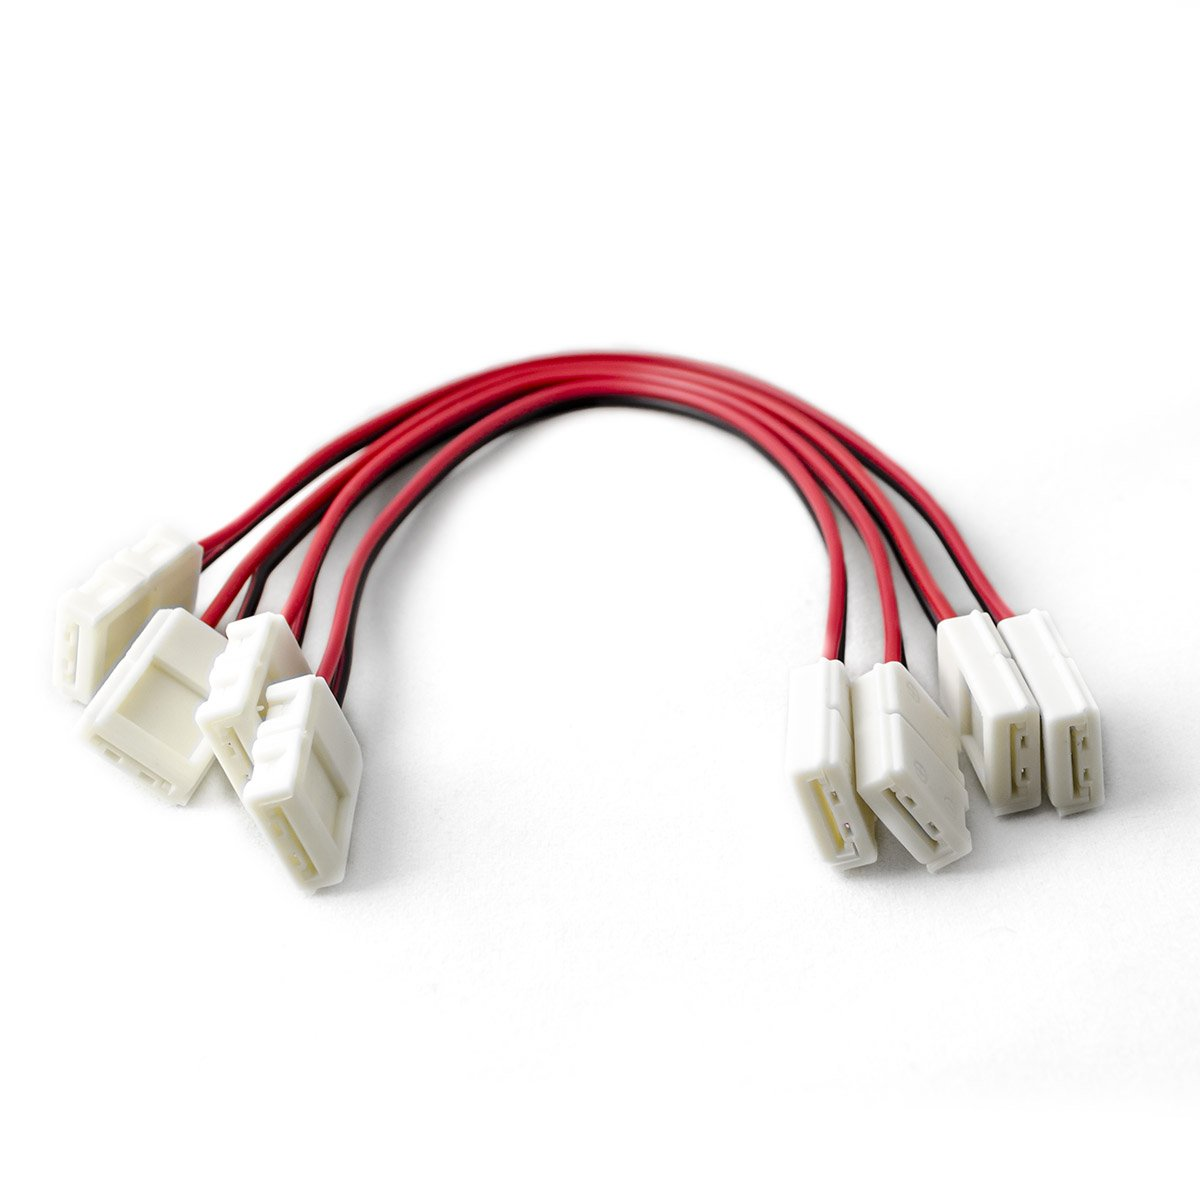 Hitlights Led Light Strip Connector 8mm Single Color Strips Requiring More Than 1 Amp Wire The Power Directly To 3528 6 Inch Any Angle 4 Pack Musical Instruments